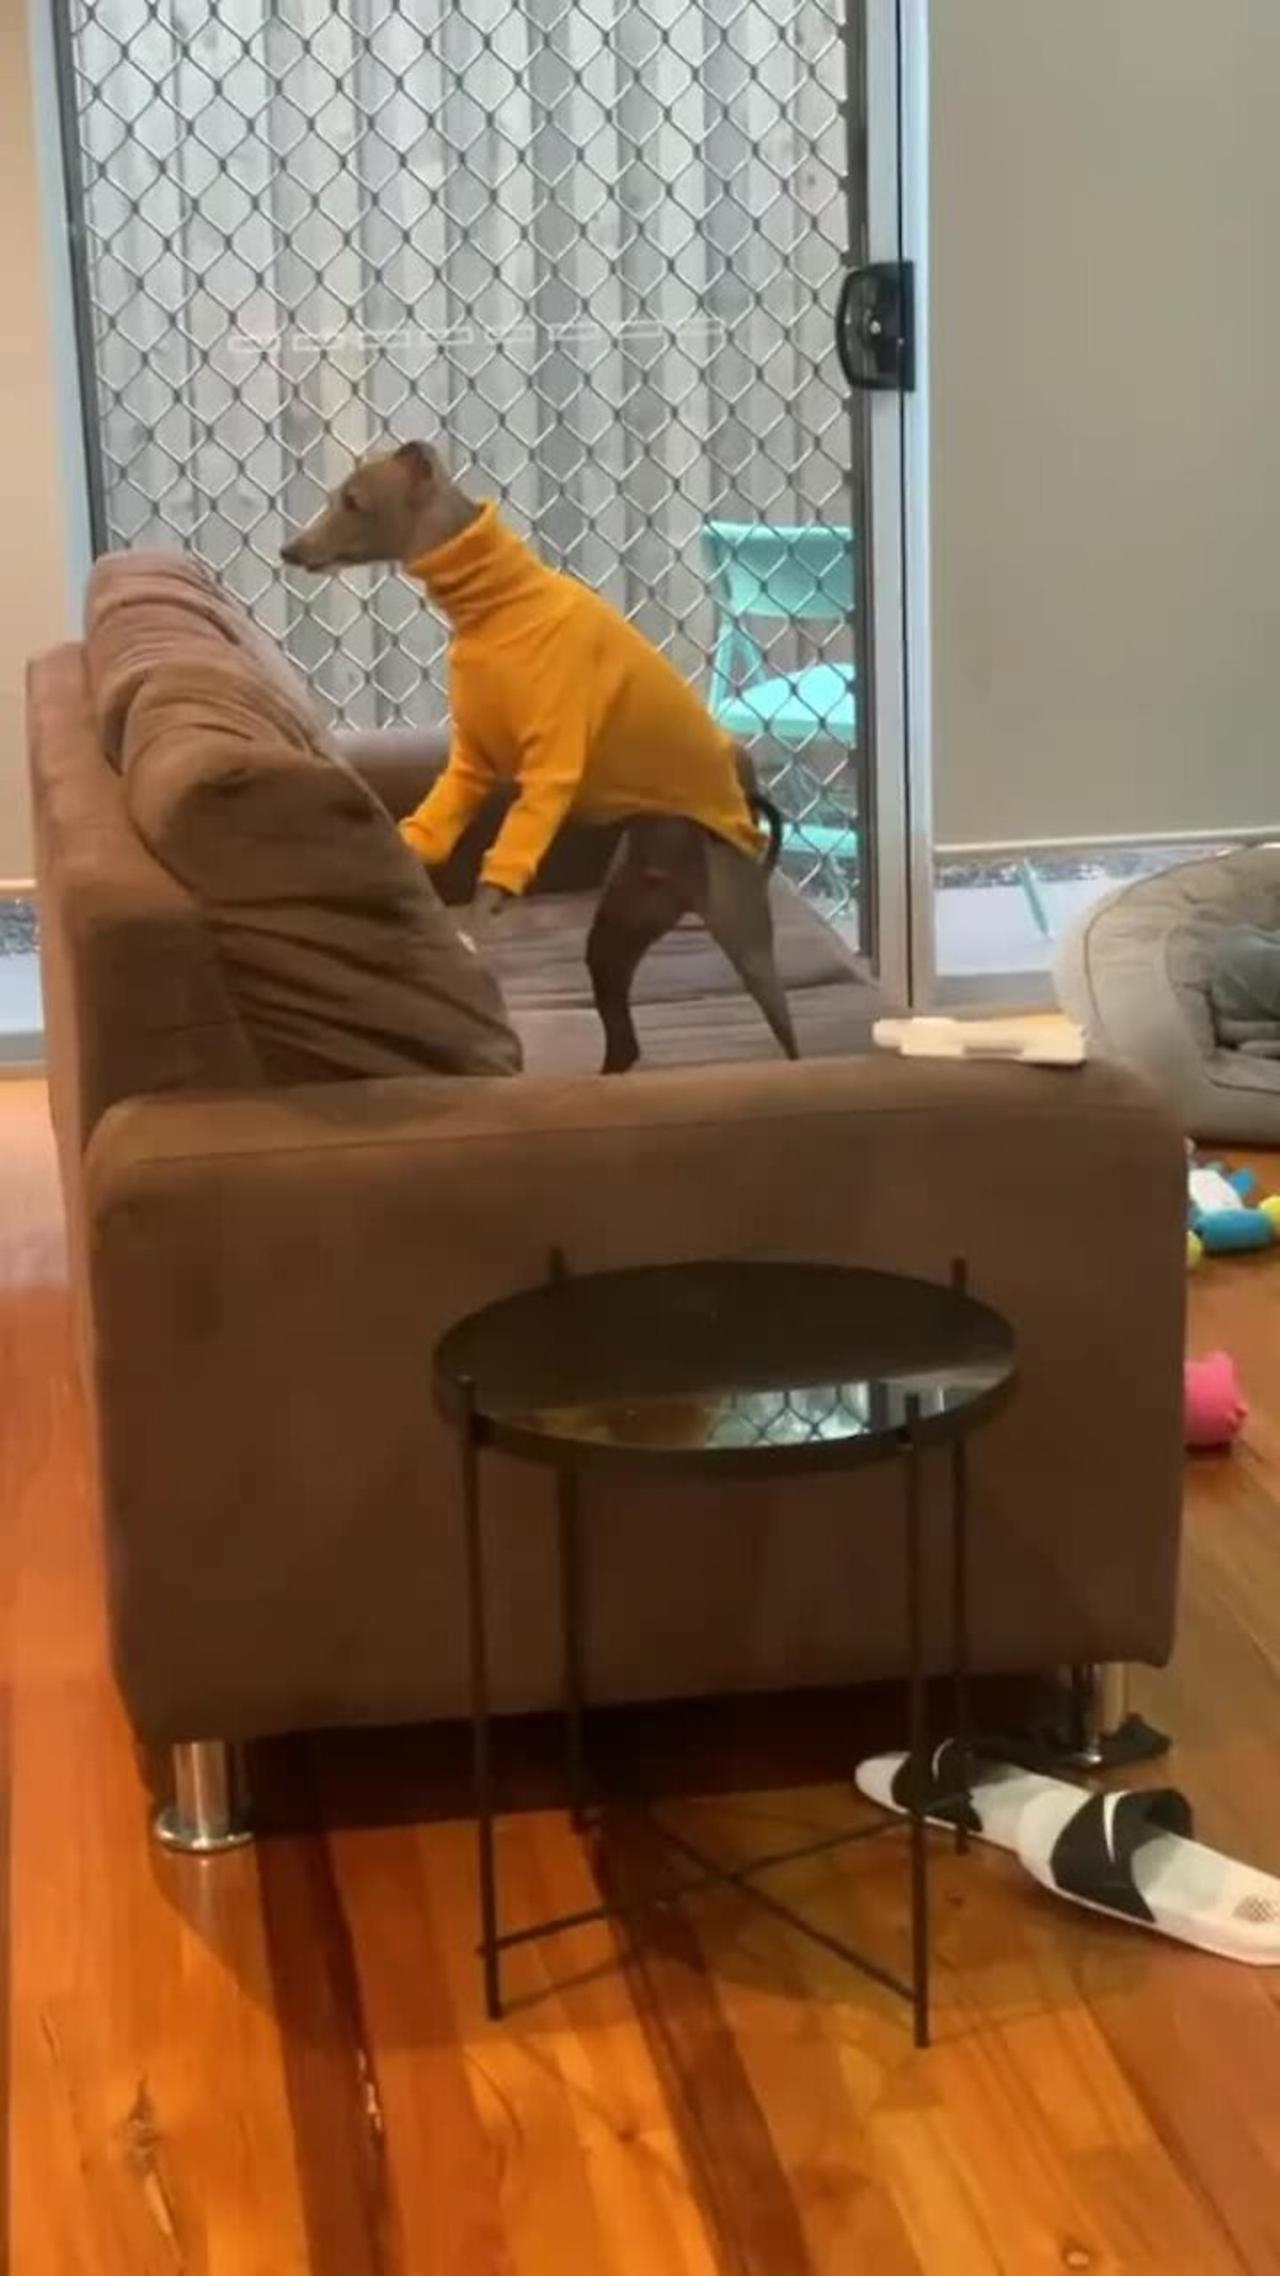 Sweater-wearing pup makes it clear he needs attention